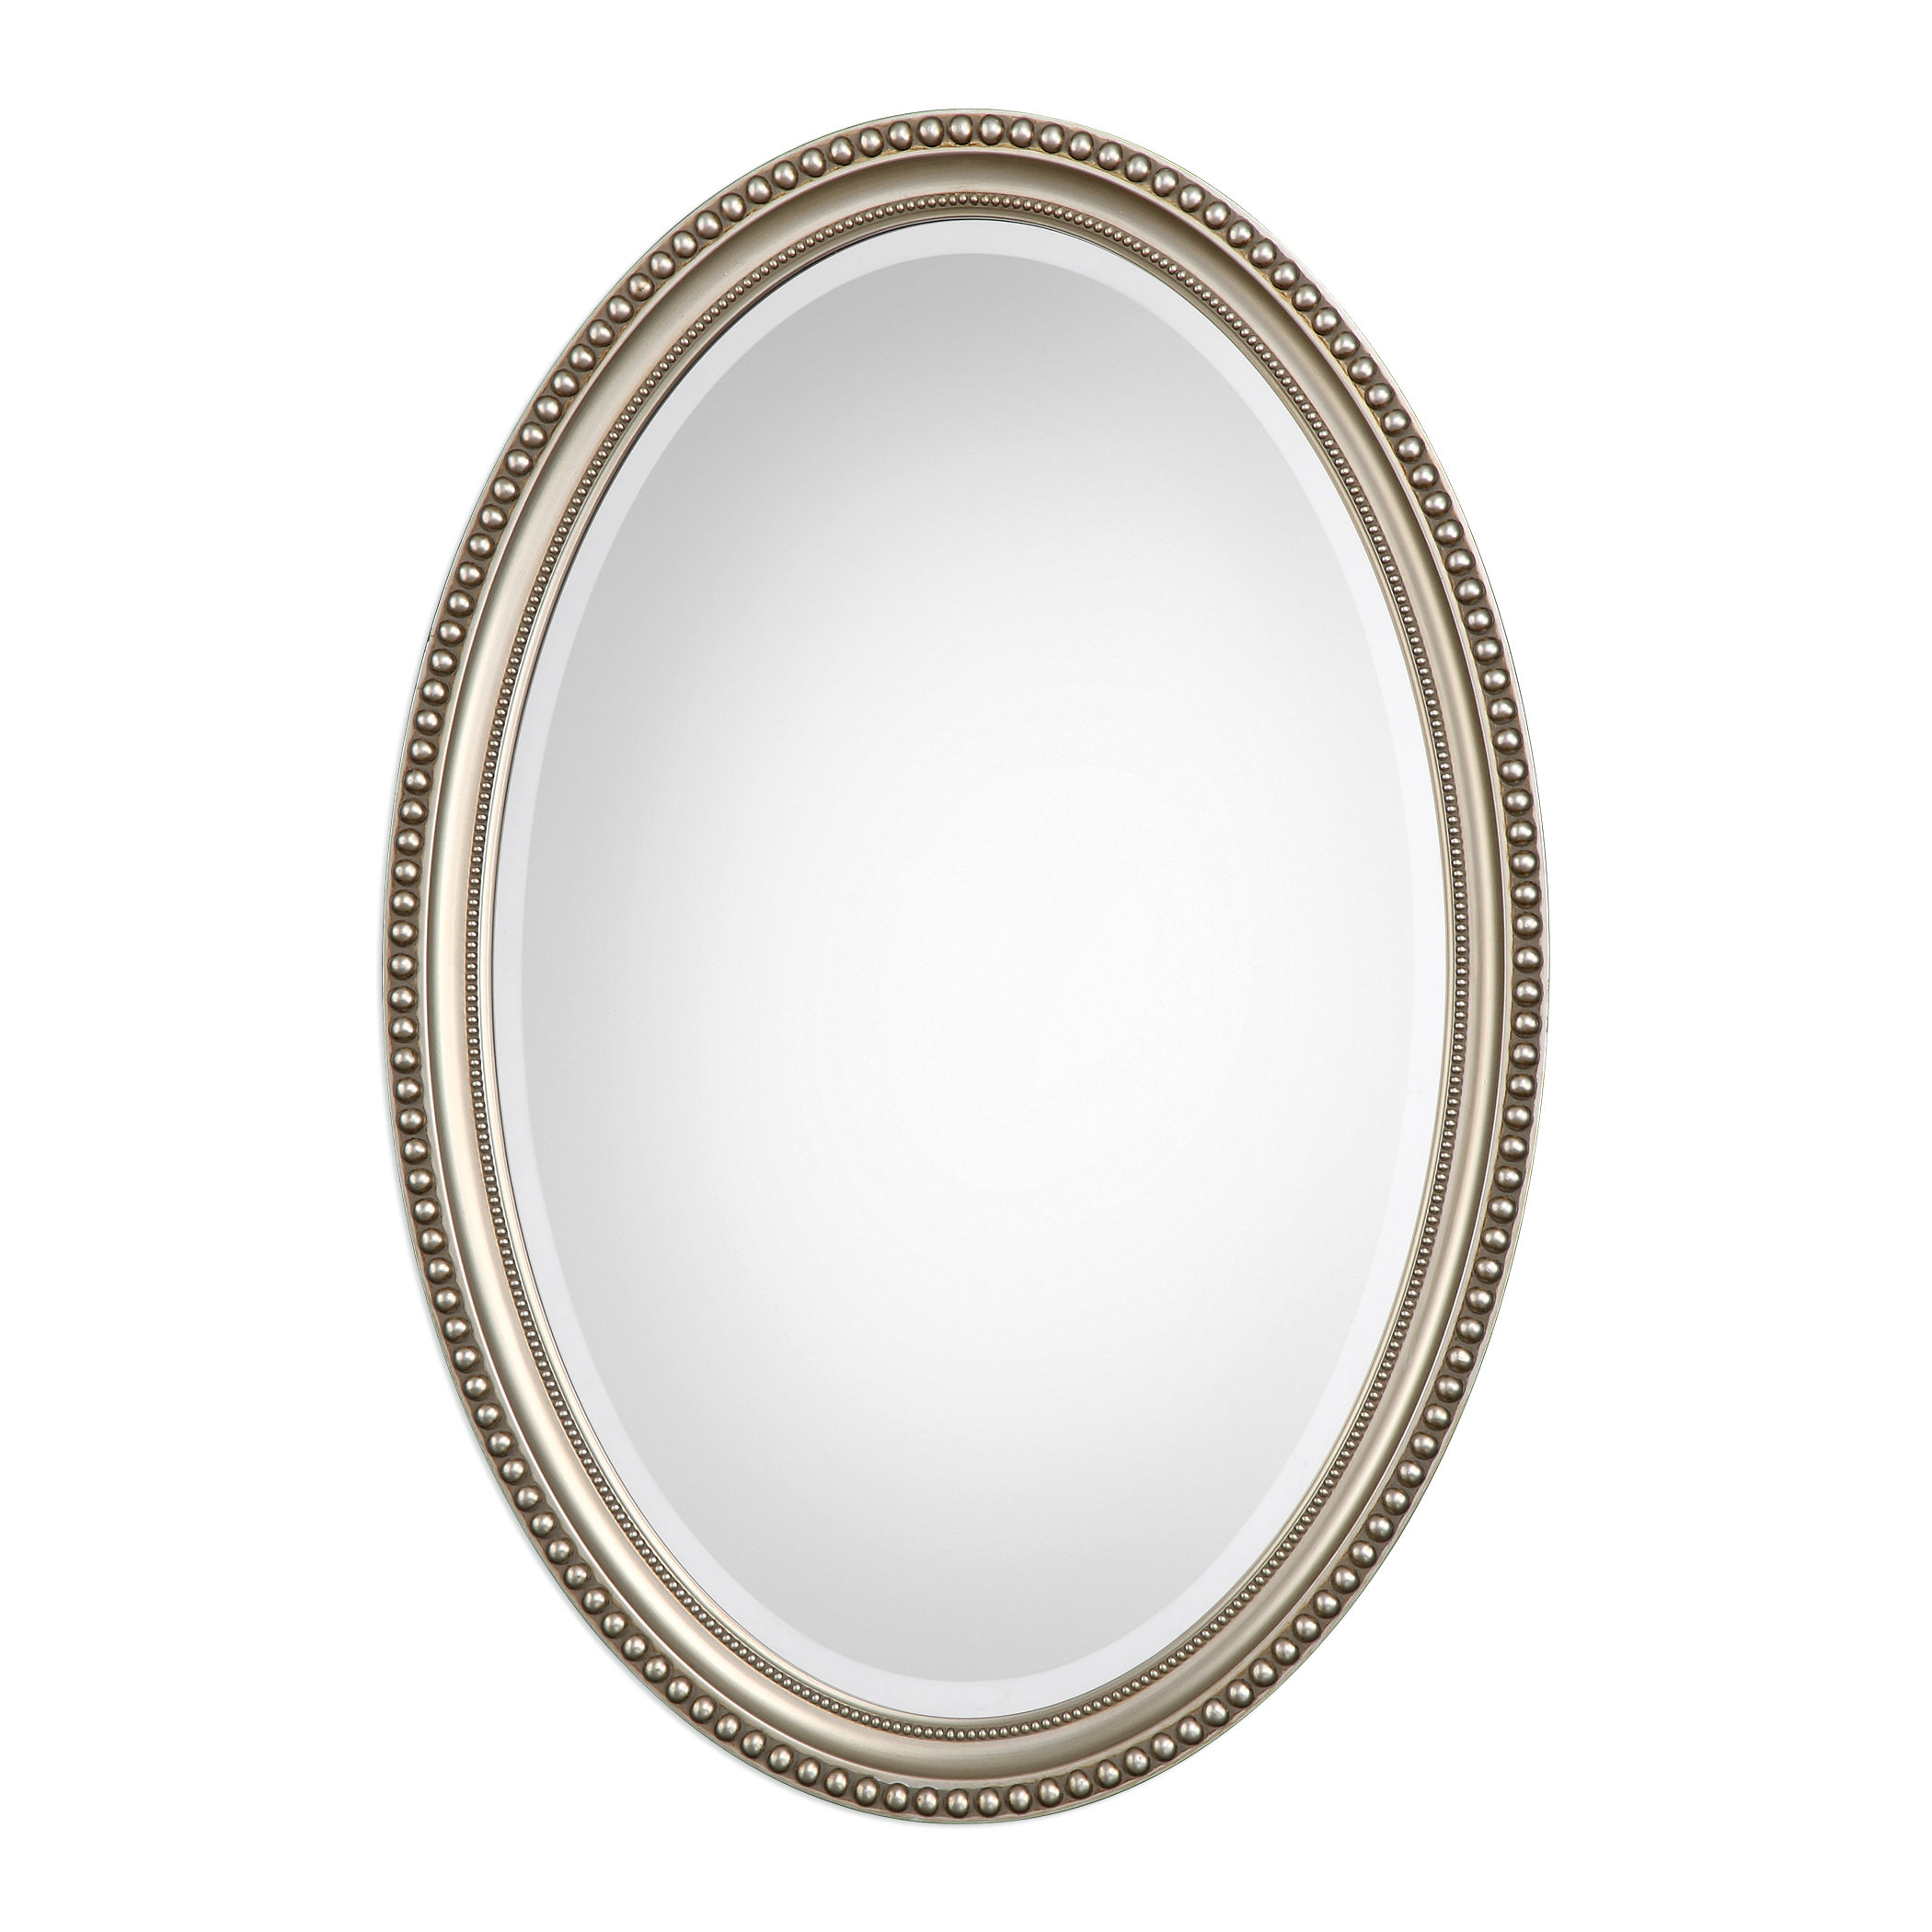 Oval Wall Mirrors | Joss & Main For Pfister Oval Wood Wall Mirrors (Image 12 of 20)